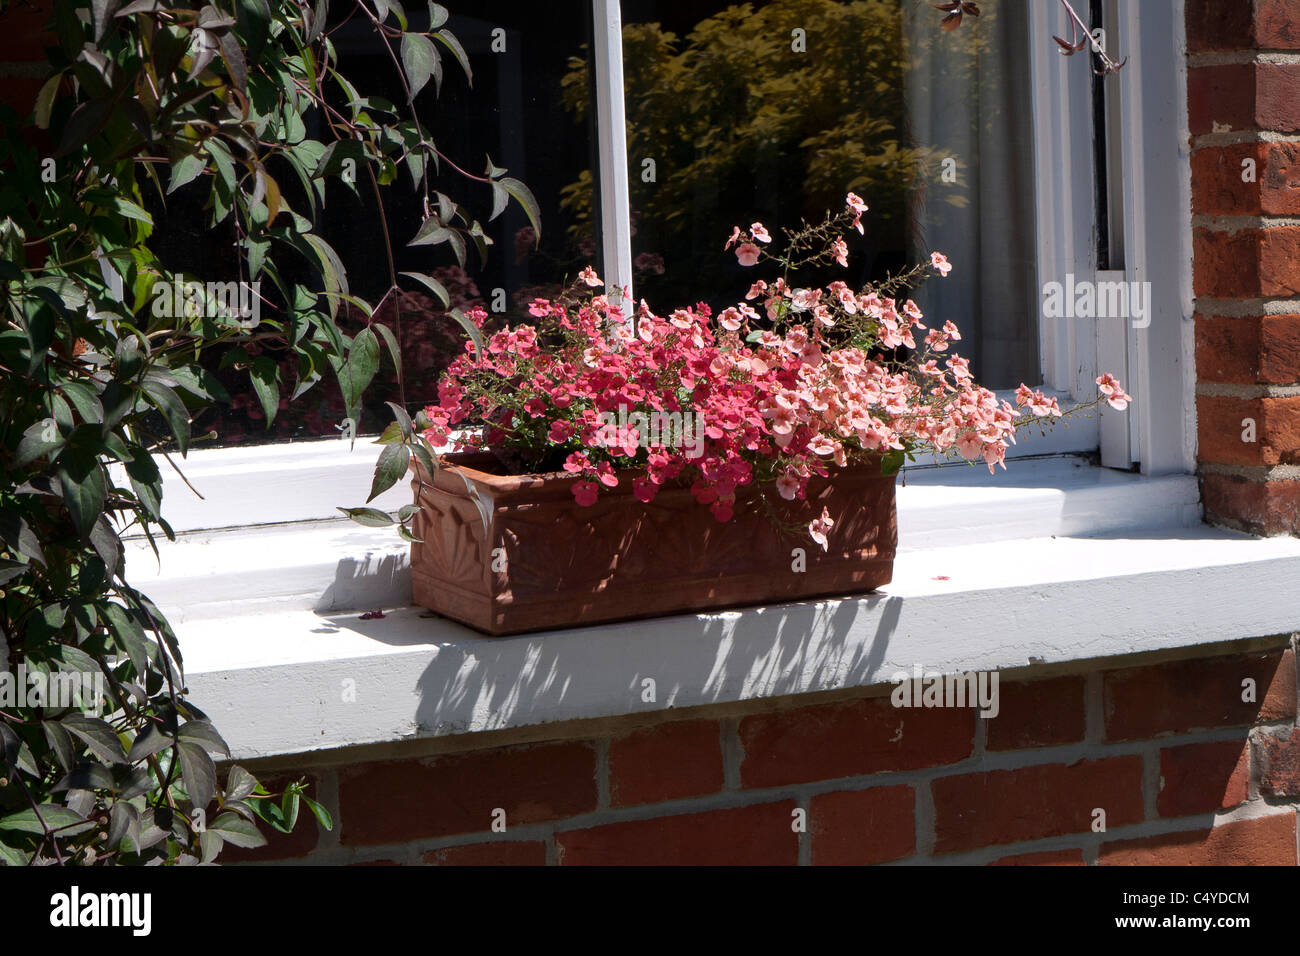 Terracotta Window box with summer Nemesia flowers on window ledge, England - Stock Image